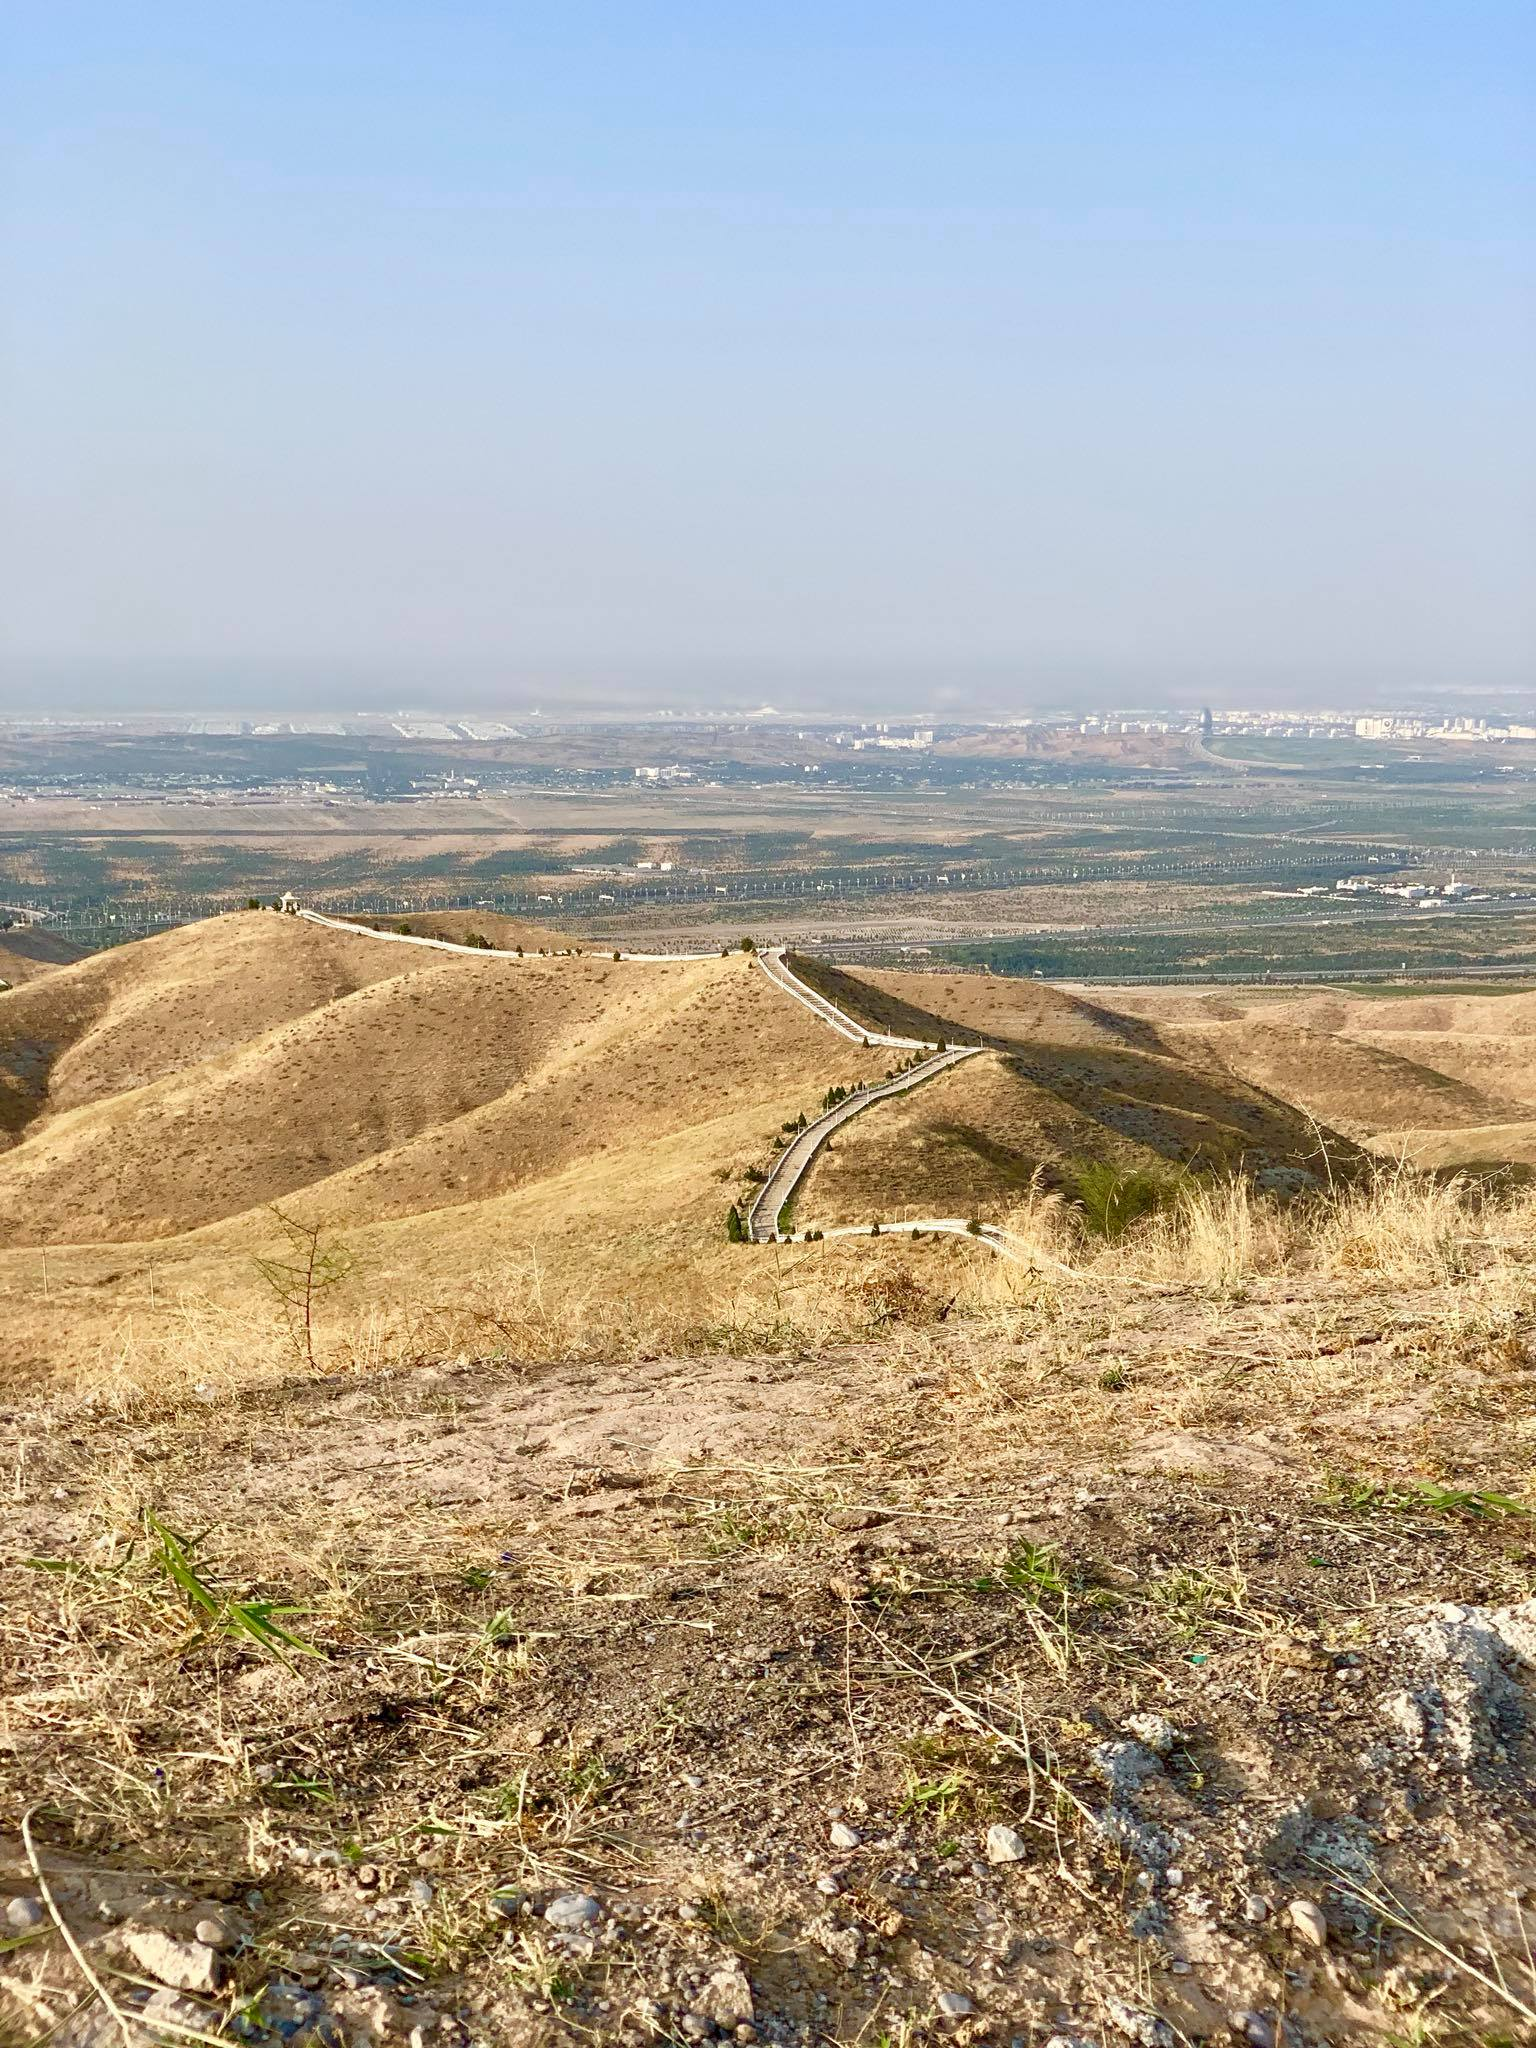 """Kach Solo Travels in 2019 Turkmenistan - the most """"unique"""" country I've visited in Central Asia36.jpg"""